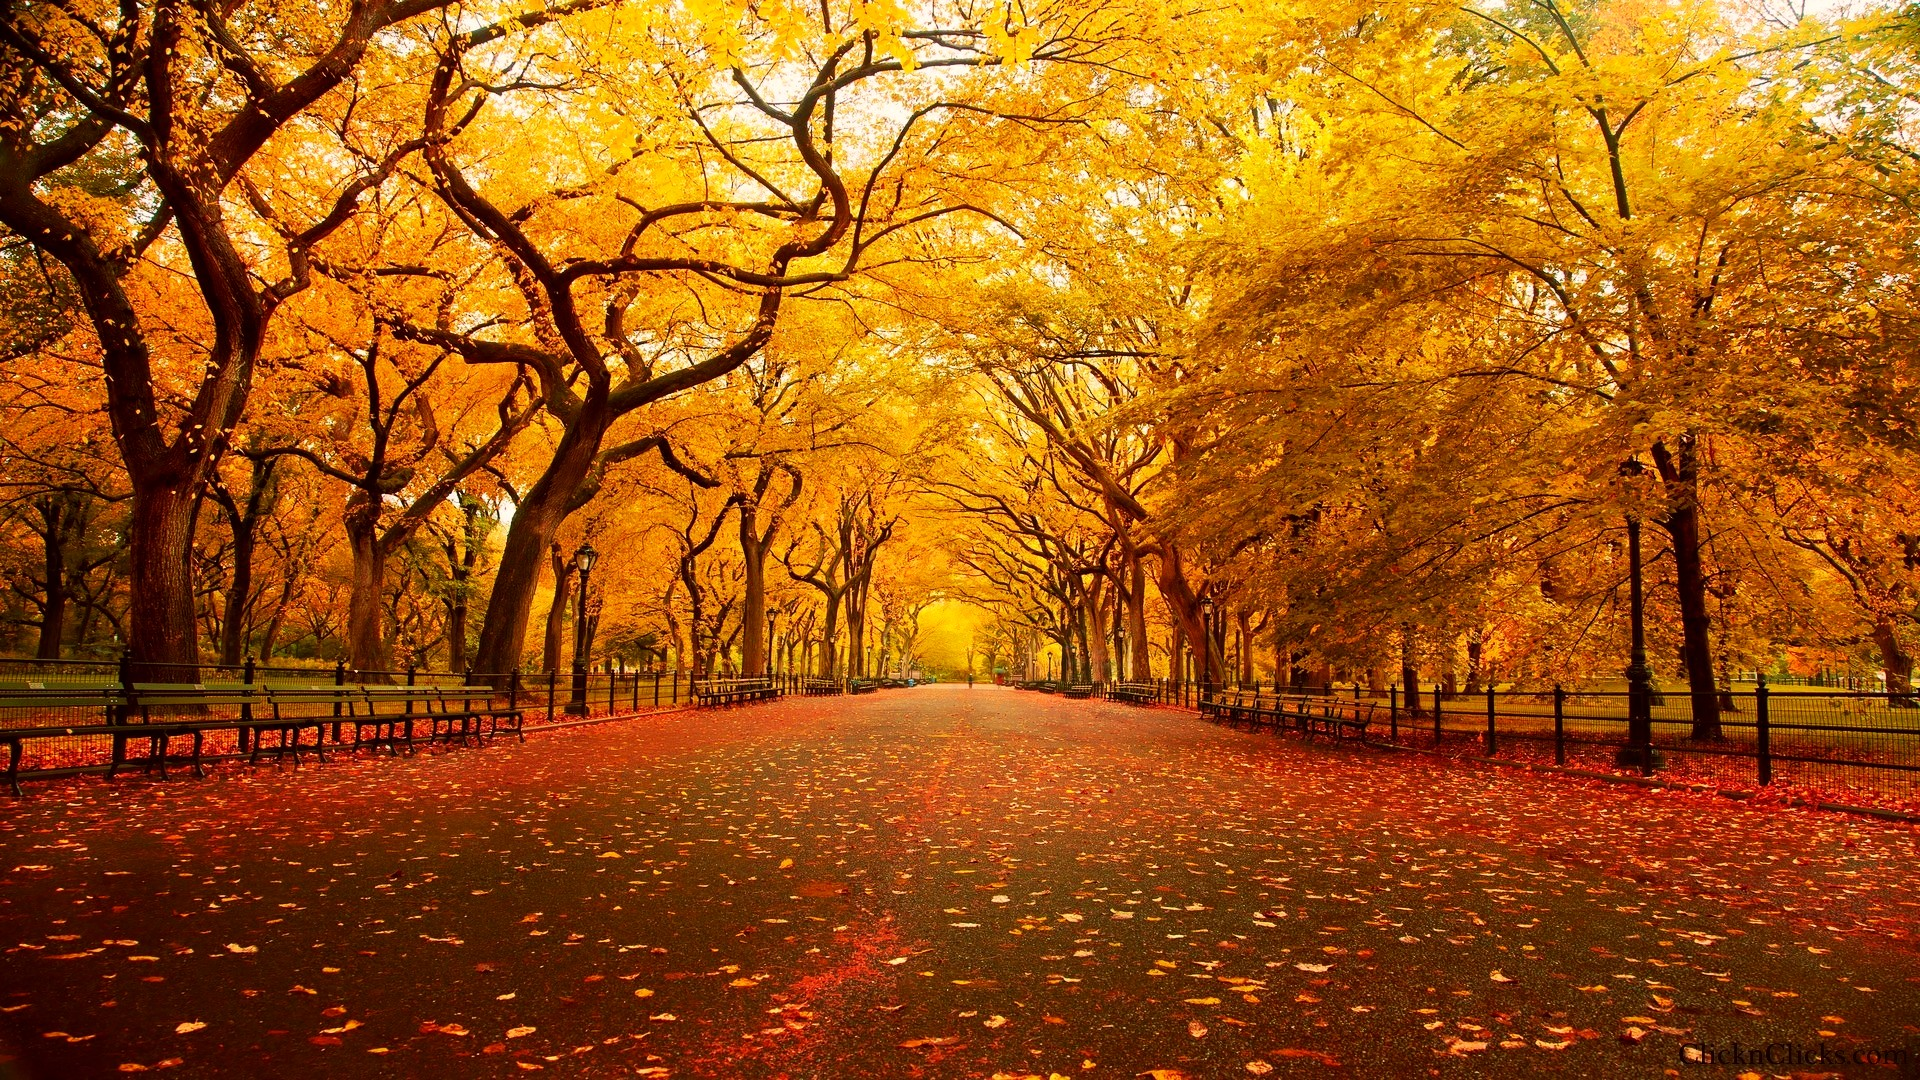 Fall Android Wallpaper Fall Wallpaper 4k Iphone Pc Android Mac Download Download Free